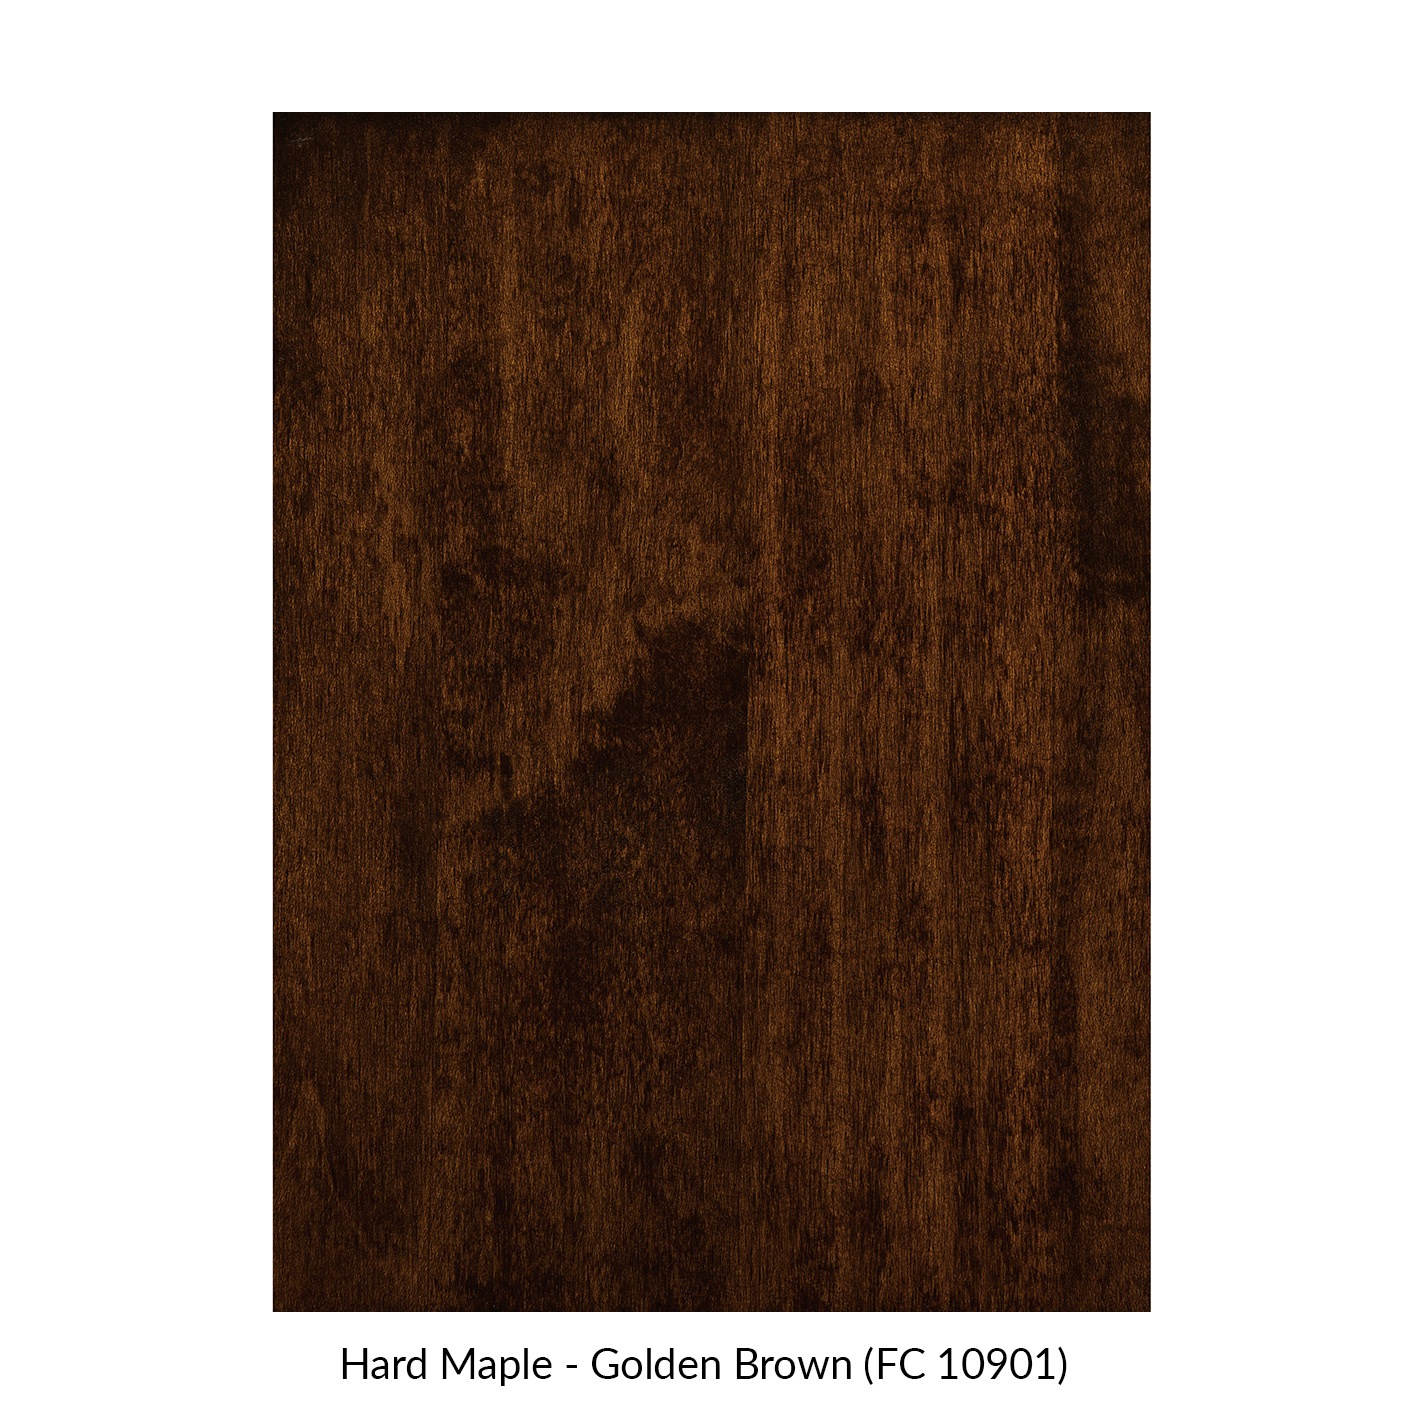 spectrum-hard-maple-golden-brown-fc-10901.jpg